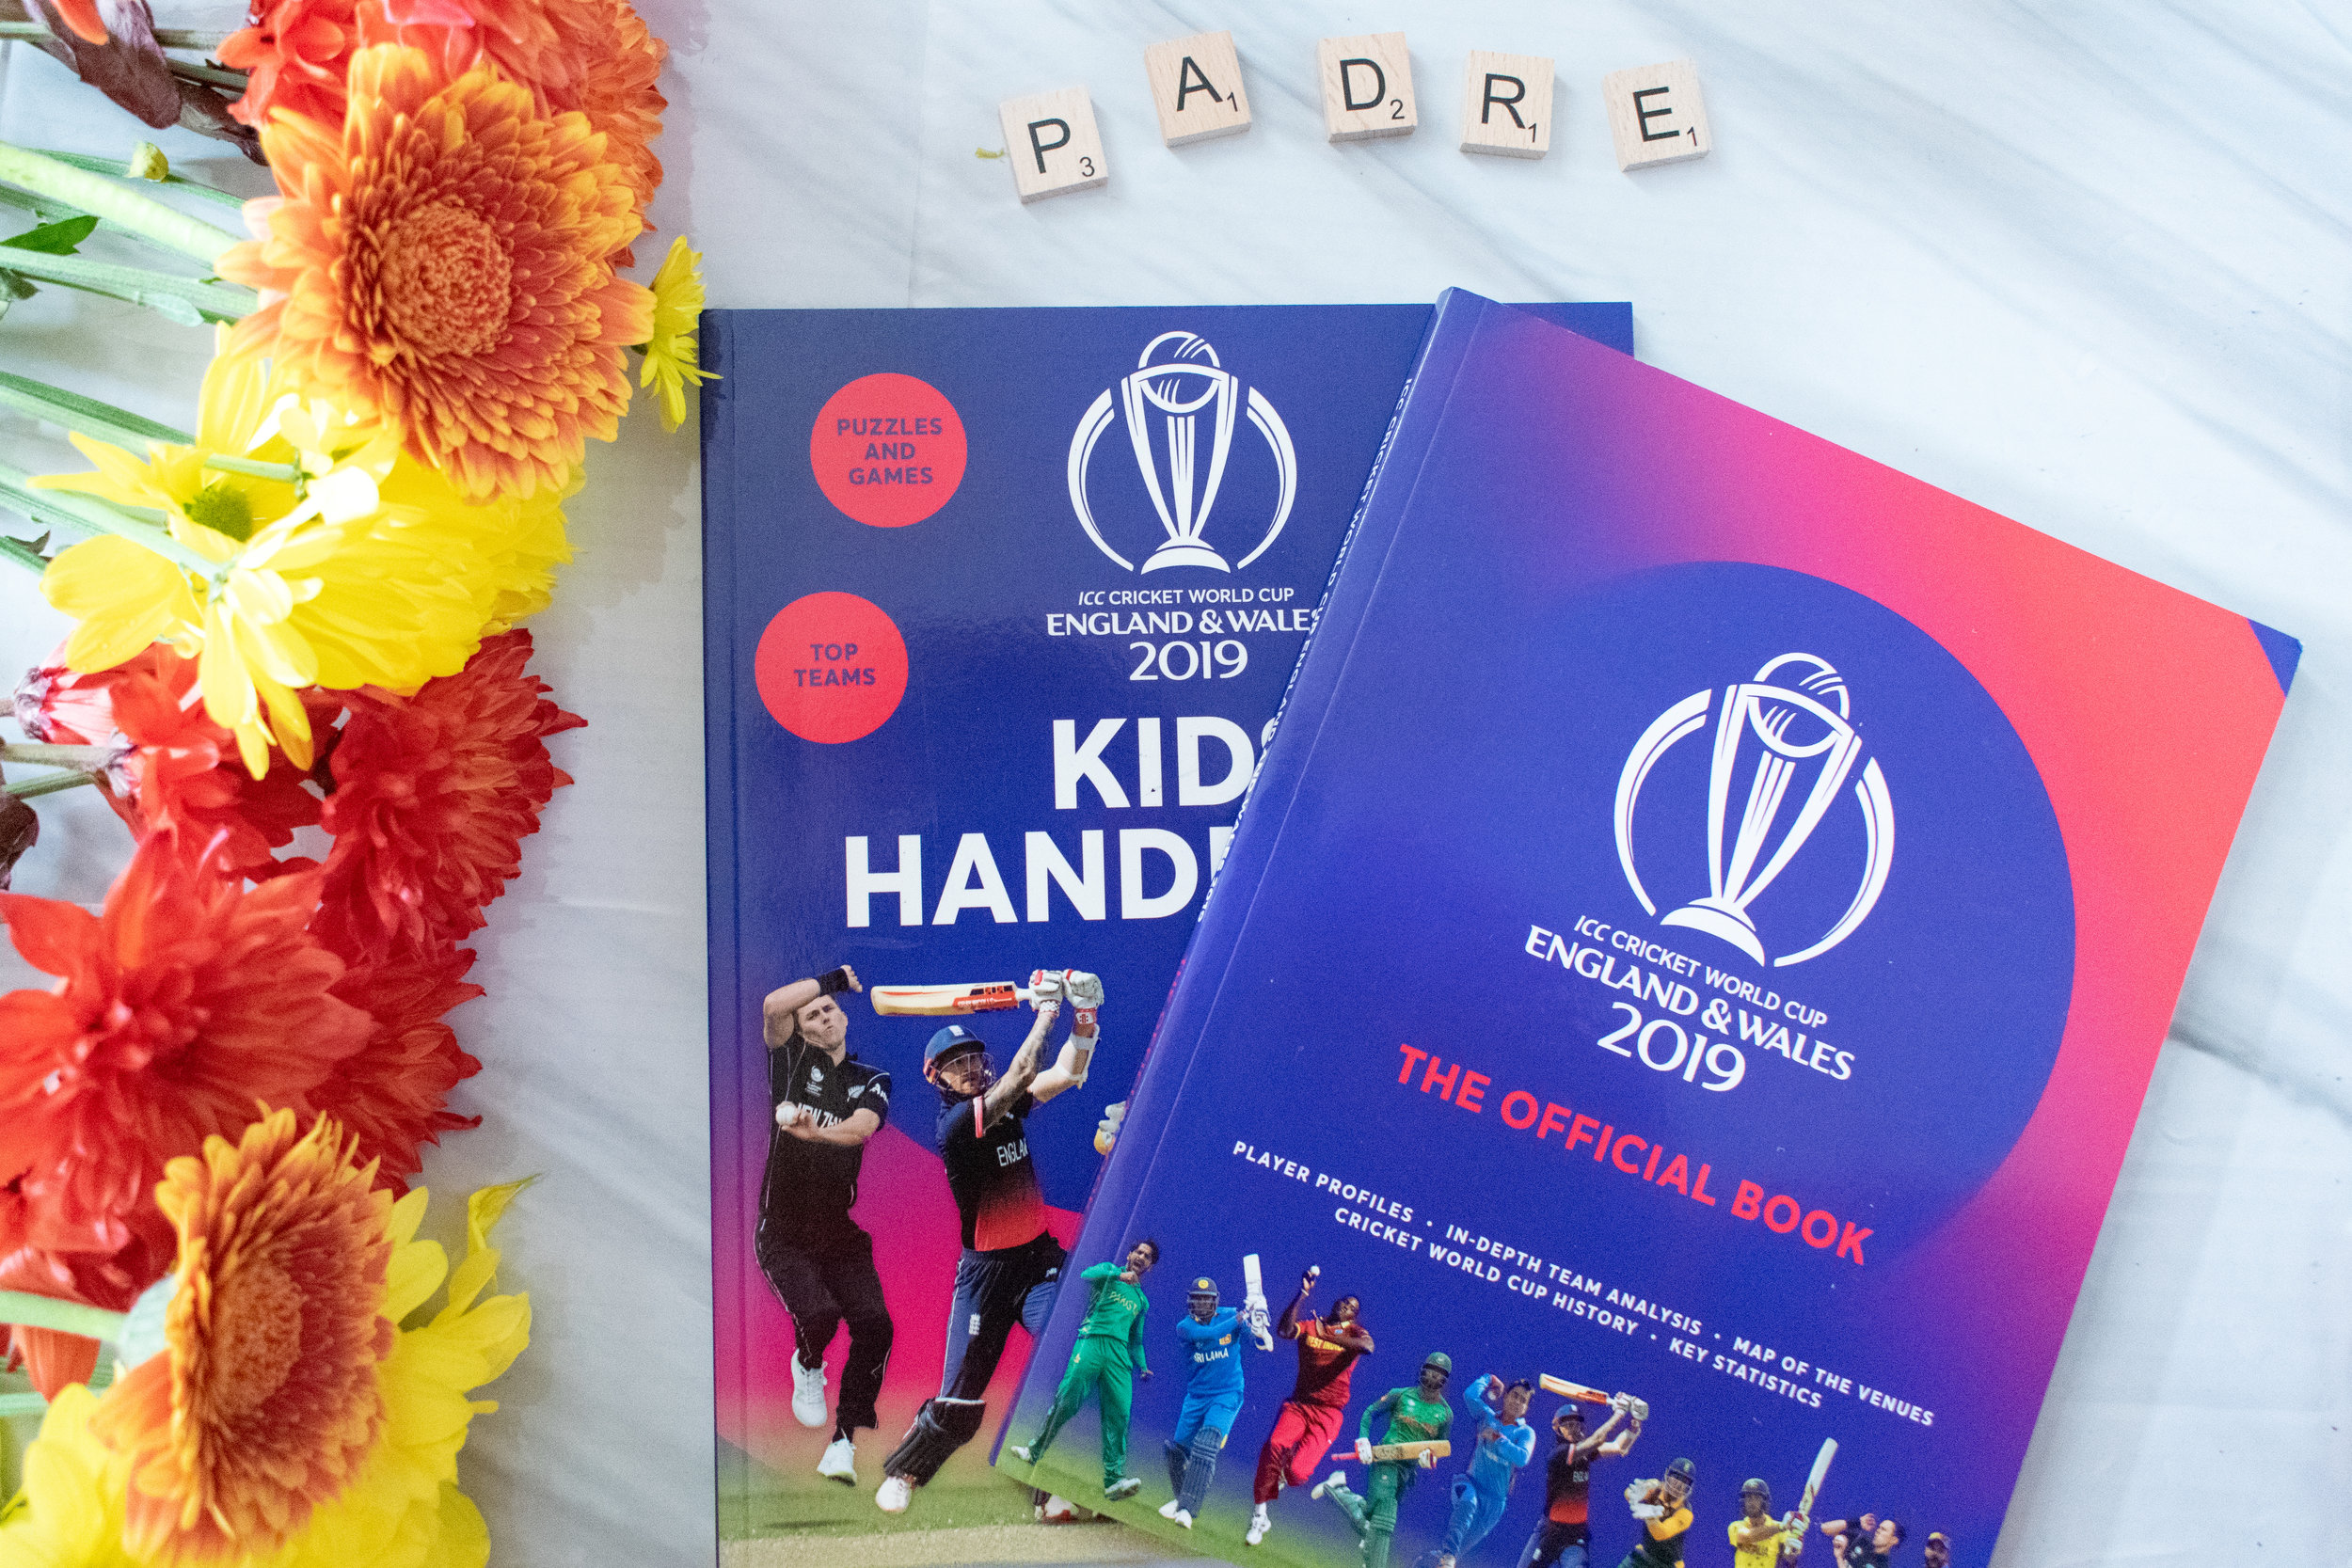 ICC Cricket World Cup official book and kid's handbook